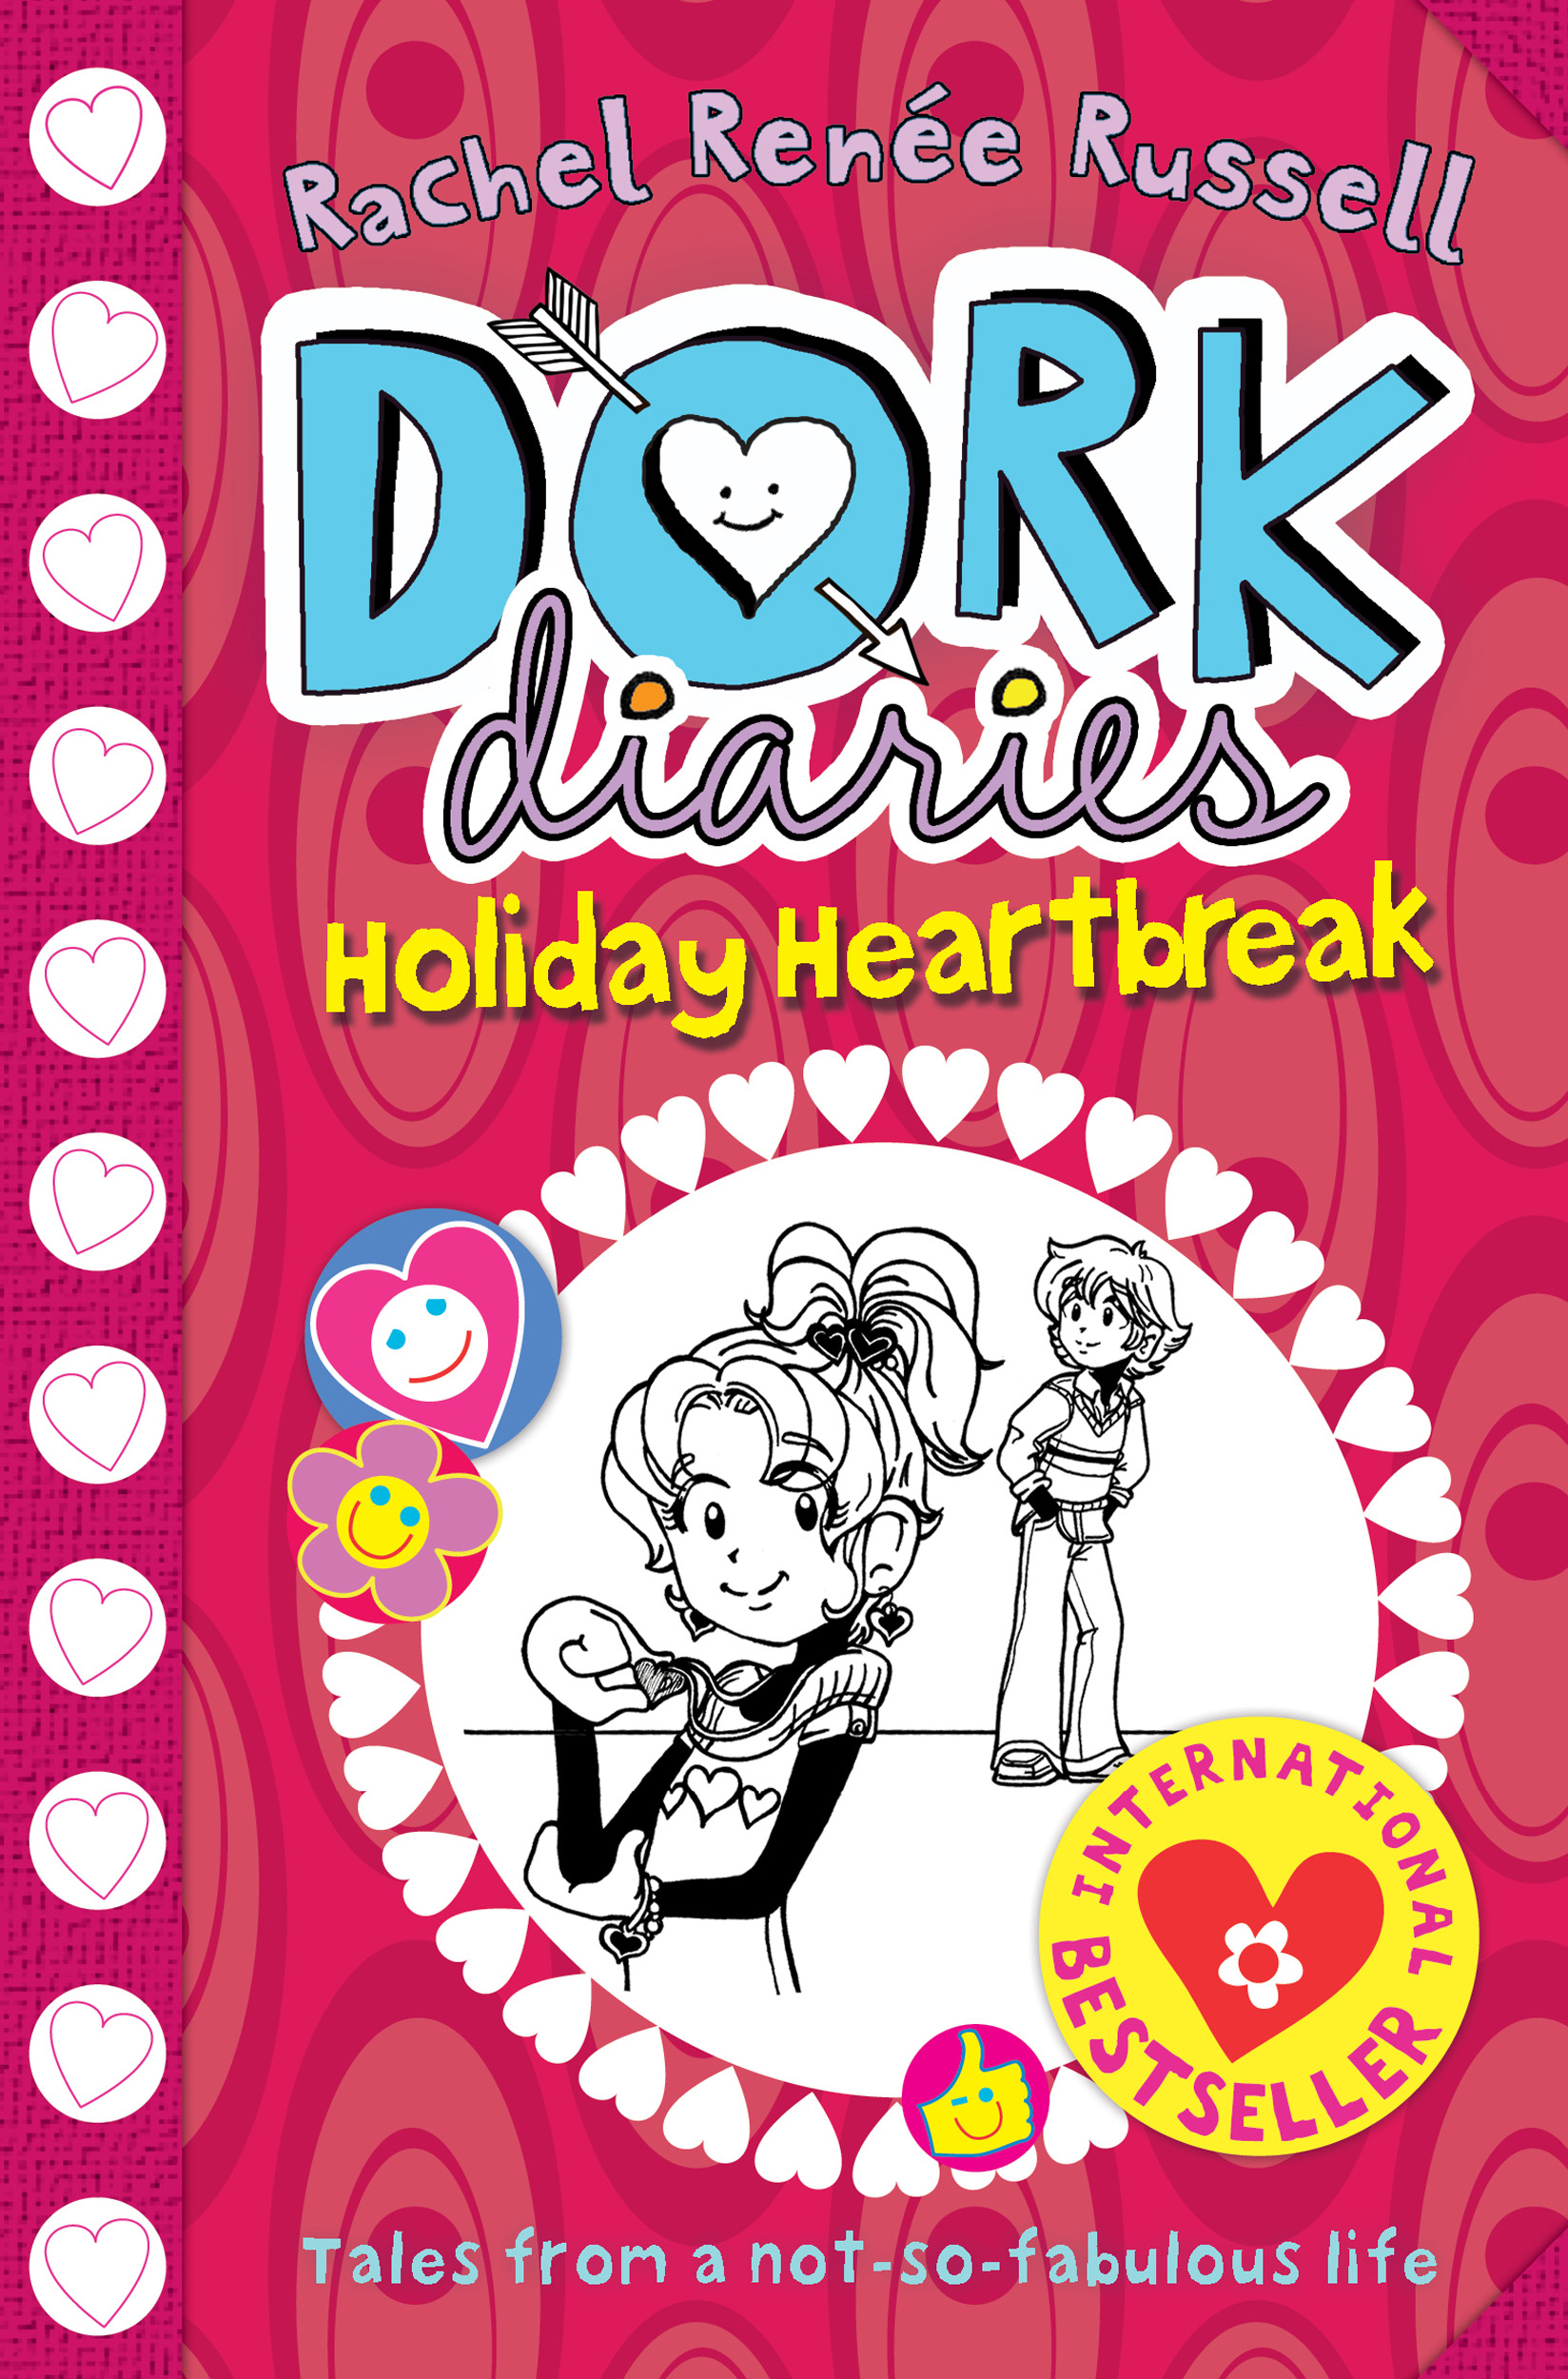 Dork Diaries: Holiday Heartbreak book : Rachel Renee Russell ...: www.bookadda.com/books/dork-diaries-holiday-rachel-renee-0857079395...